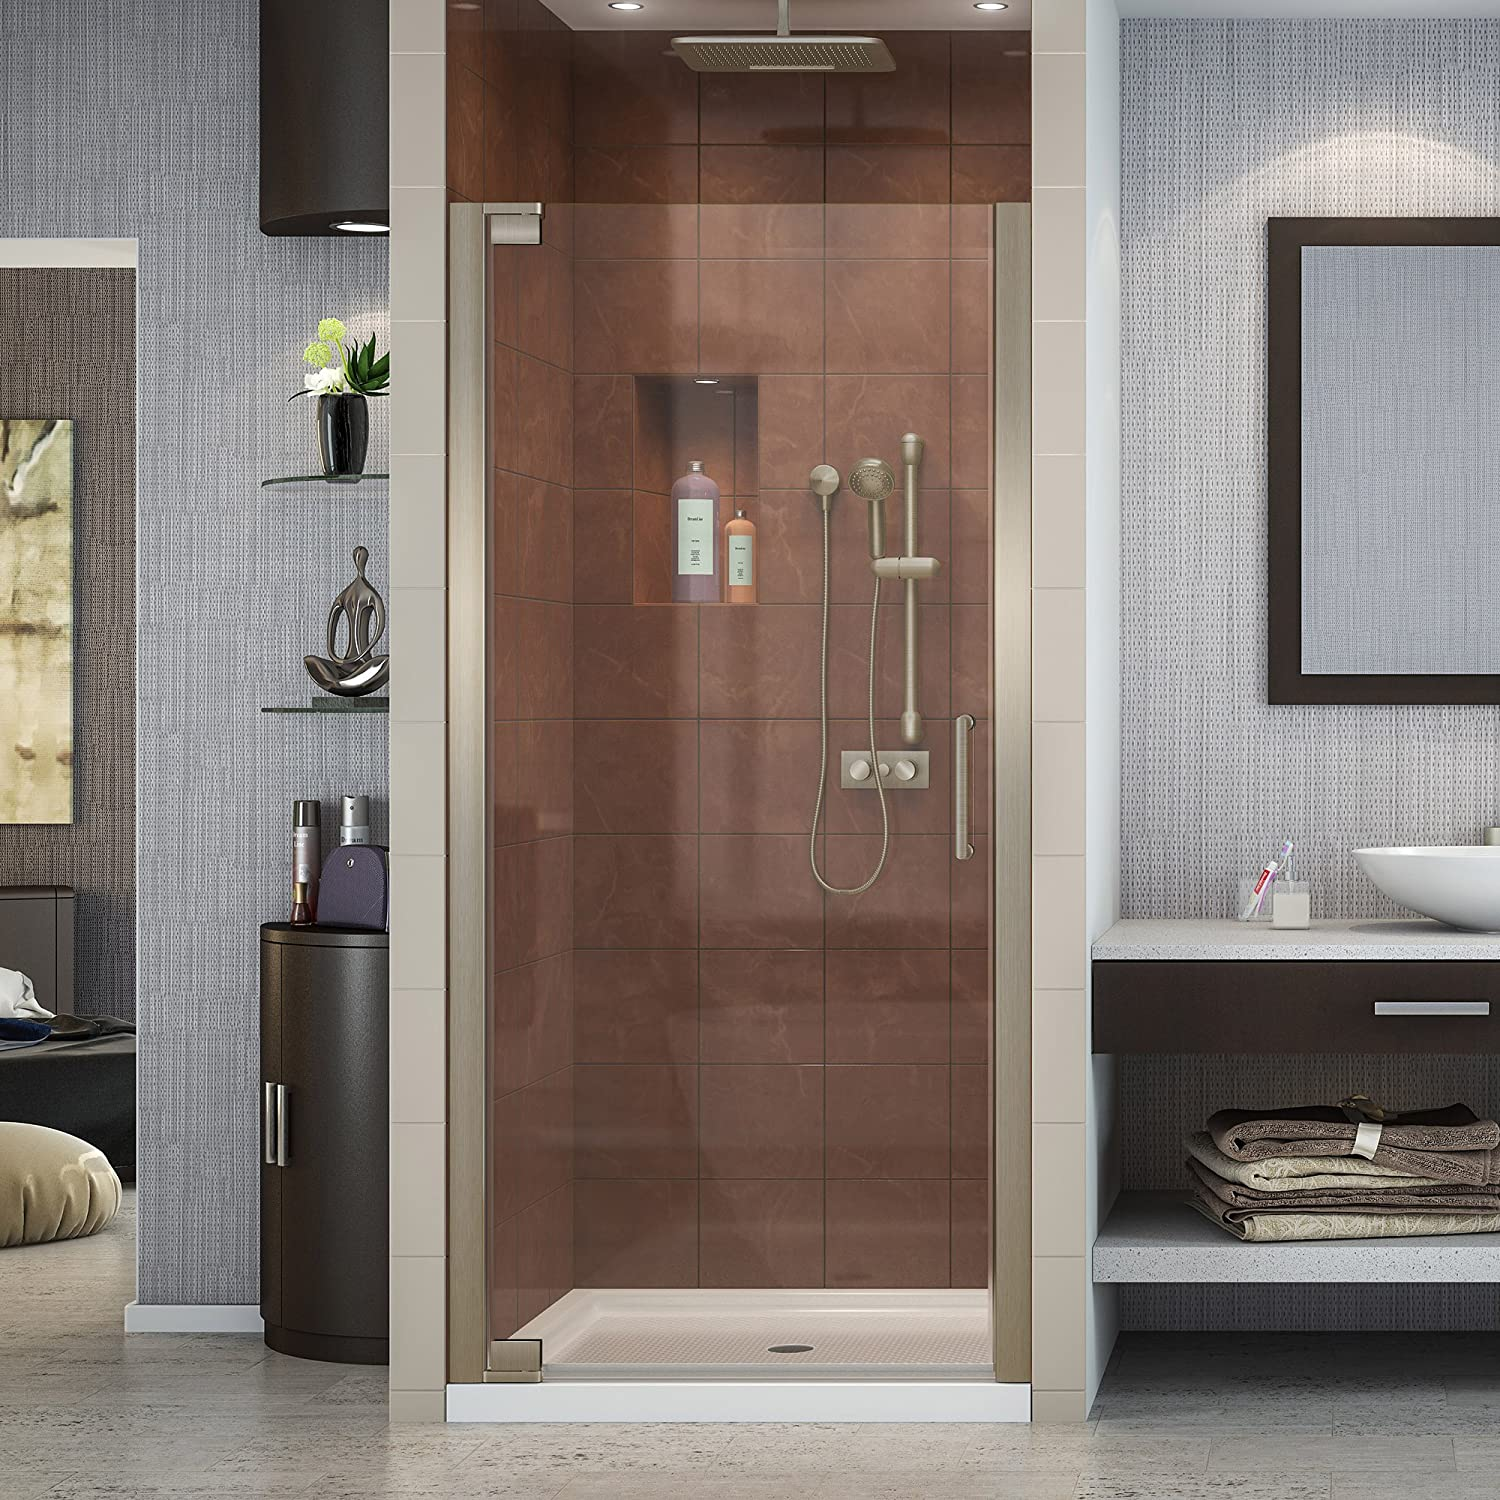 DreamLine Elegance 30 1 2 – 32 1 2 in. W x 72 in. H Frameless Pivot Shower Door in Brushed Nickel, SHDR-4130720-04